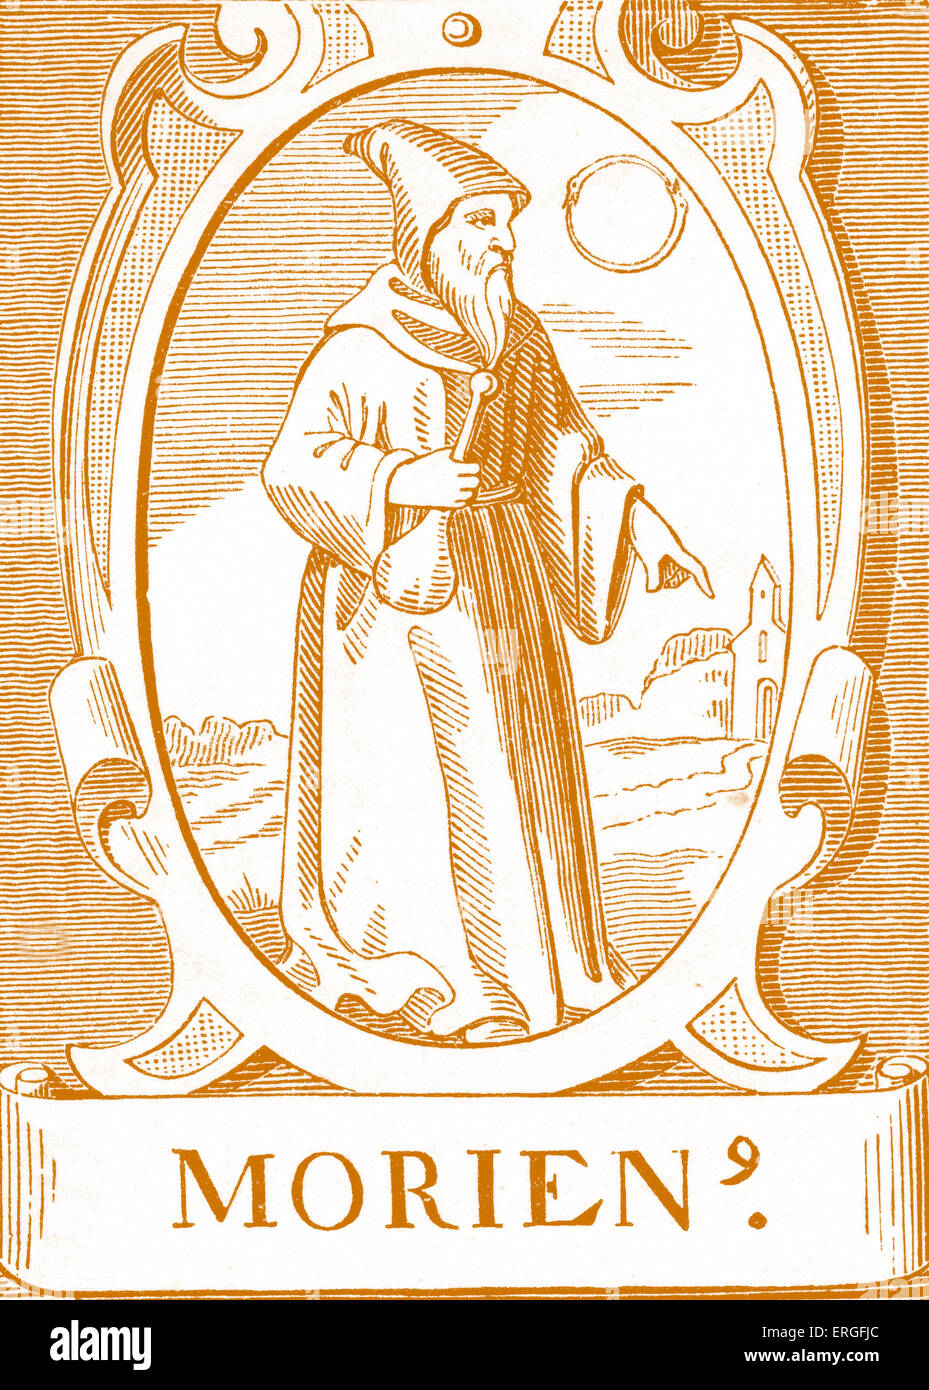 The Alchemist Morenius - after engraving by Vriese. - Stock Image